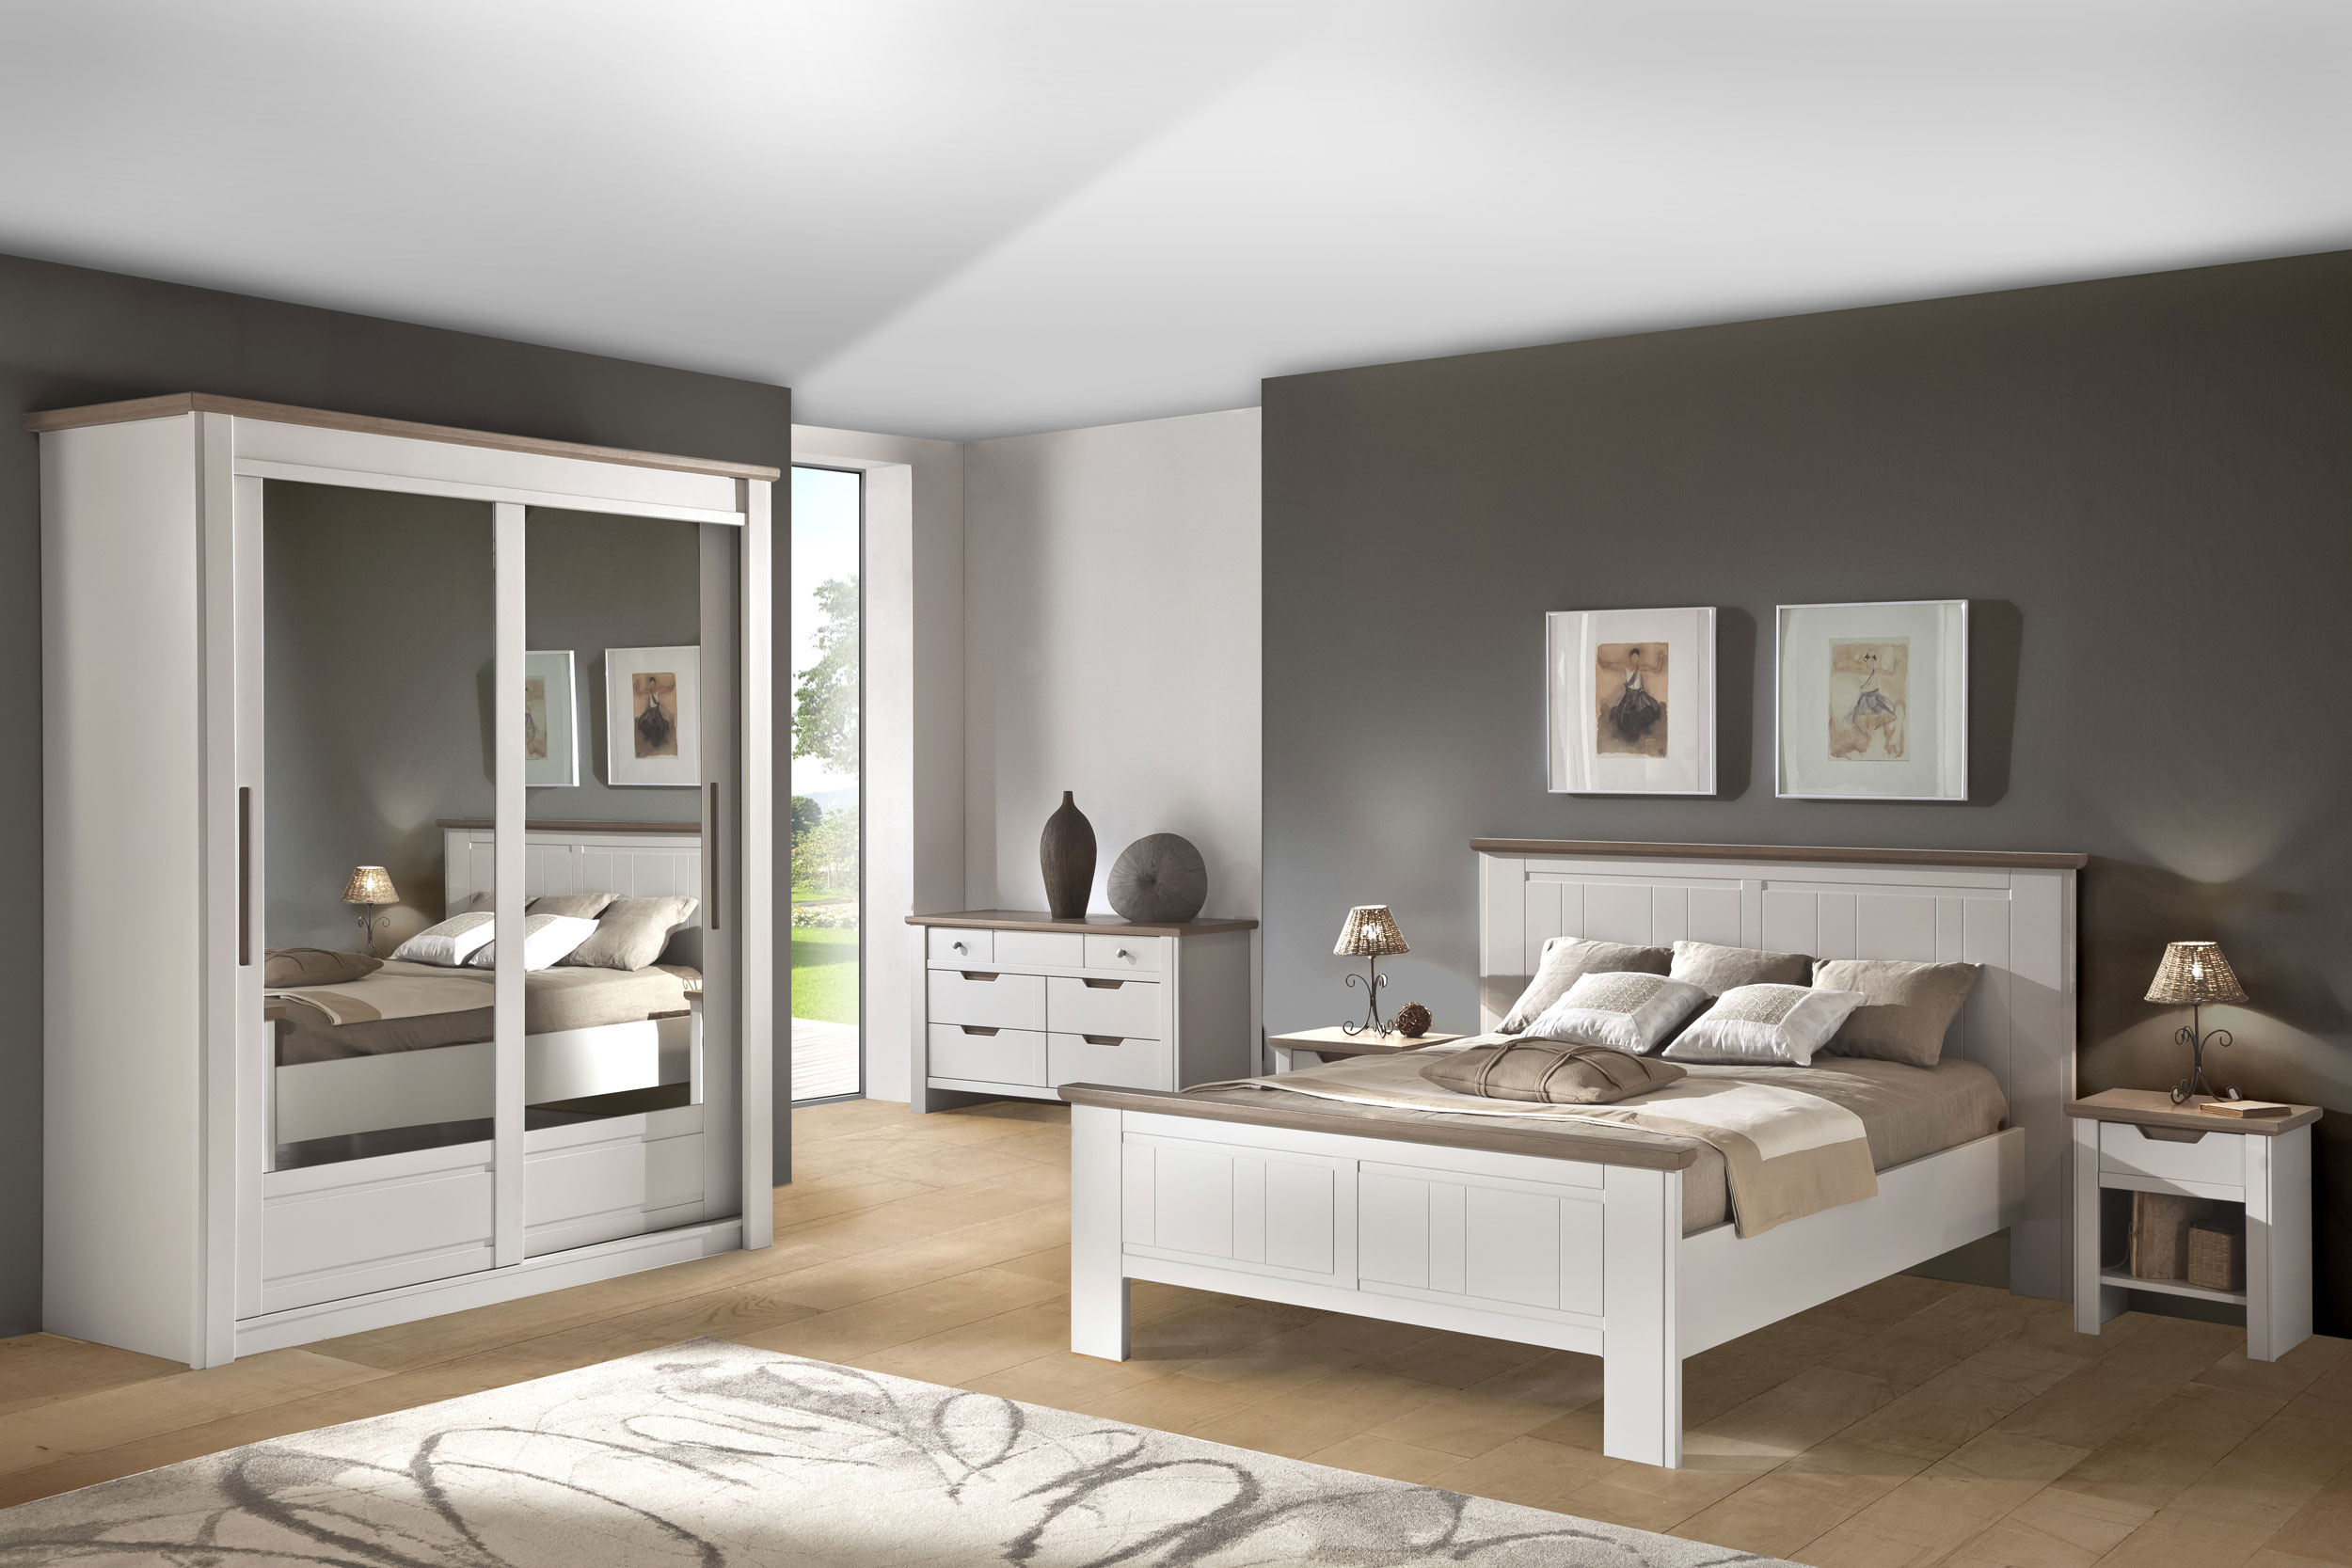 D coration chambre meuble bois exemples d 39 am nagements for Amenagement chambre a coucher adulte